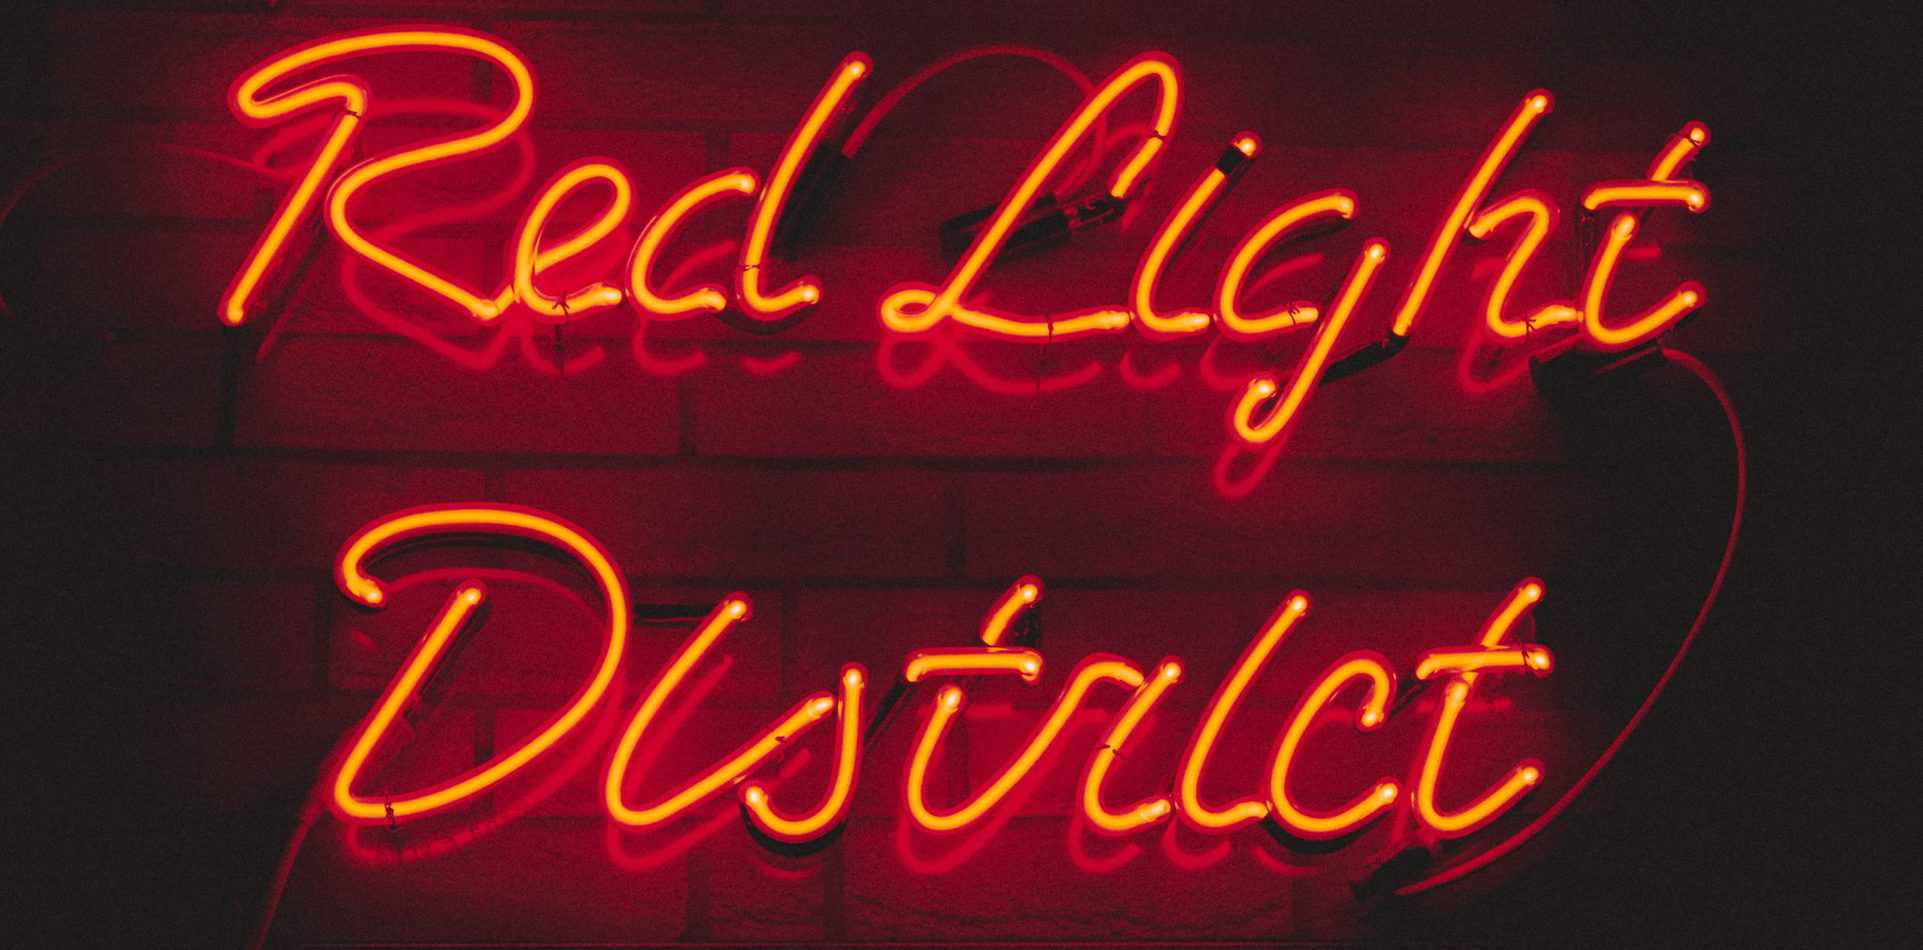 Light sign: Red Light District